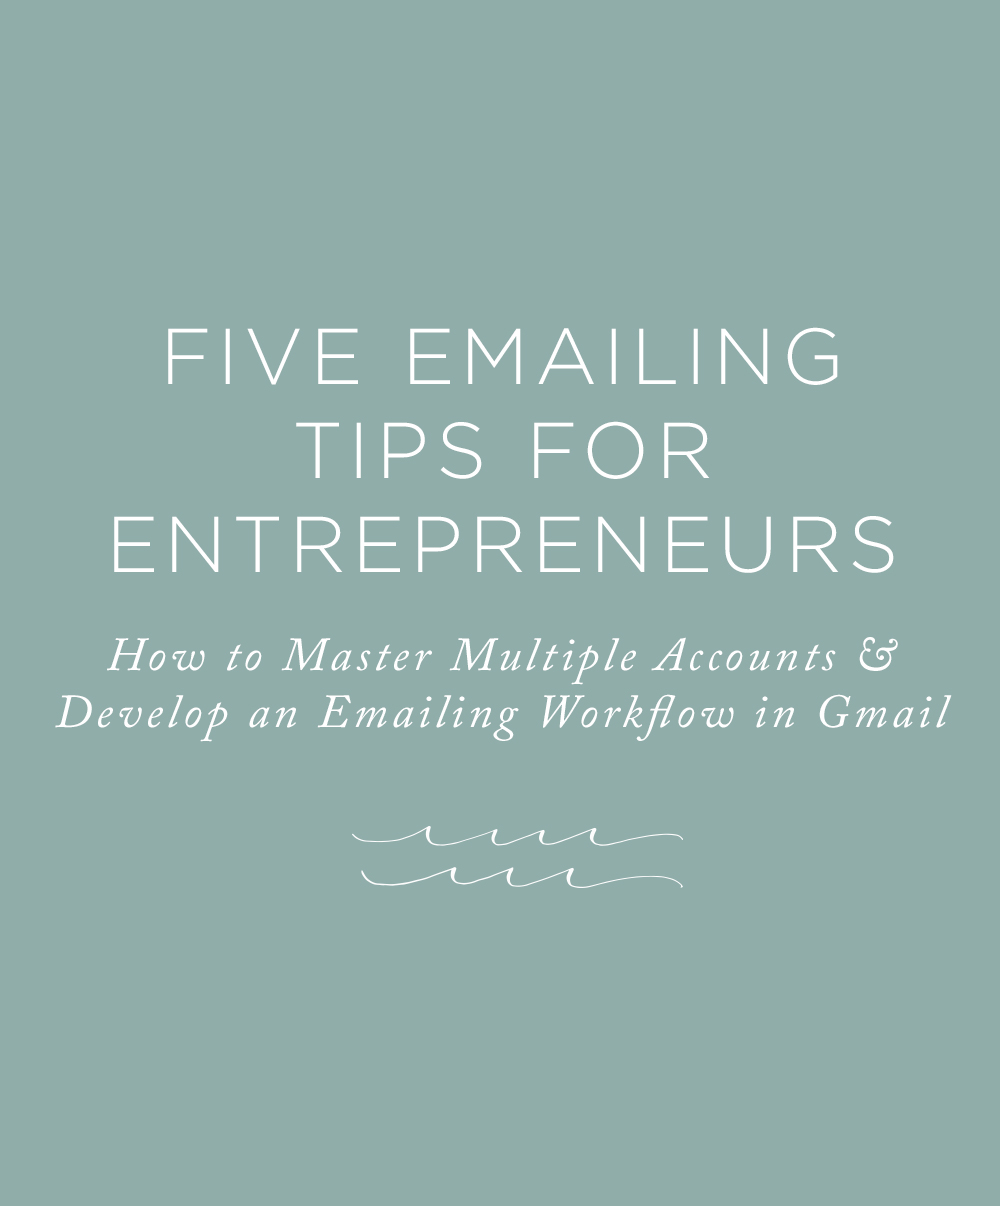 Emailing_Tips_Small_Business